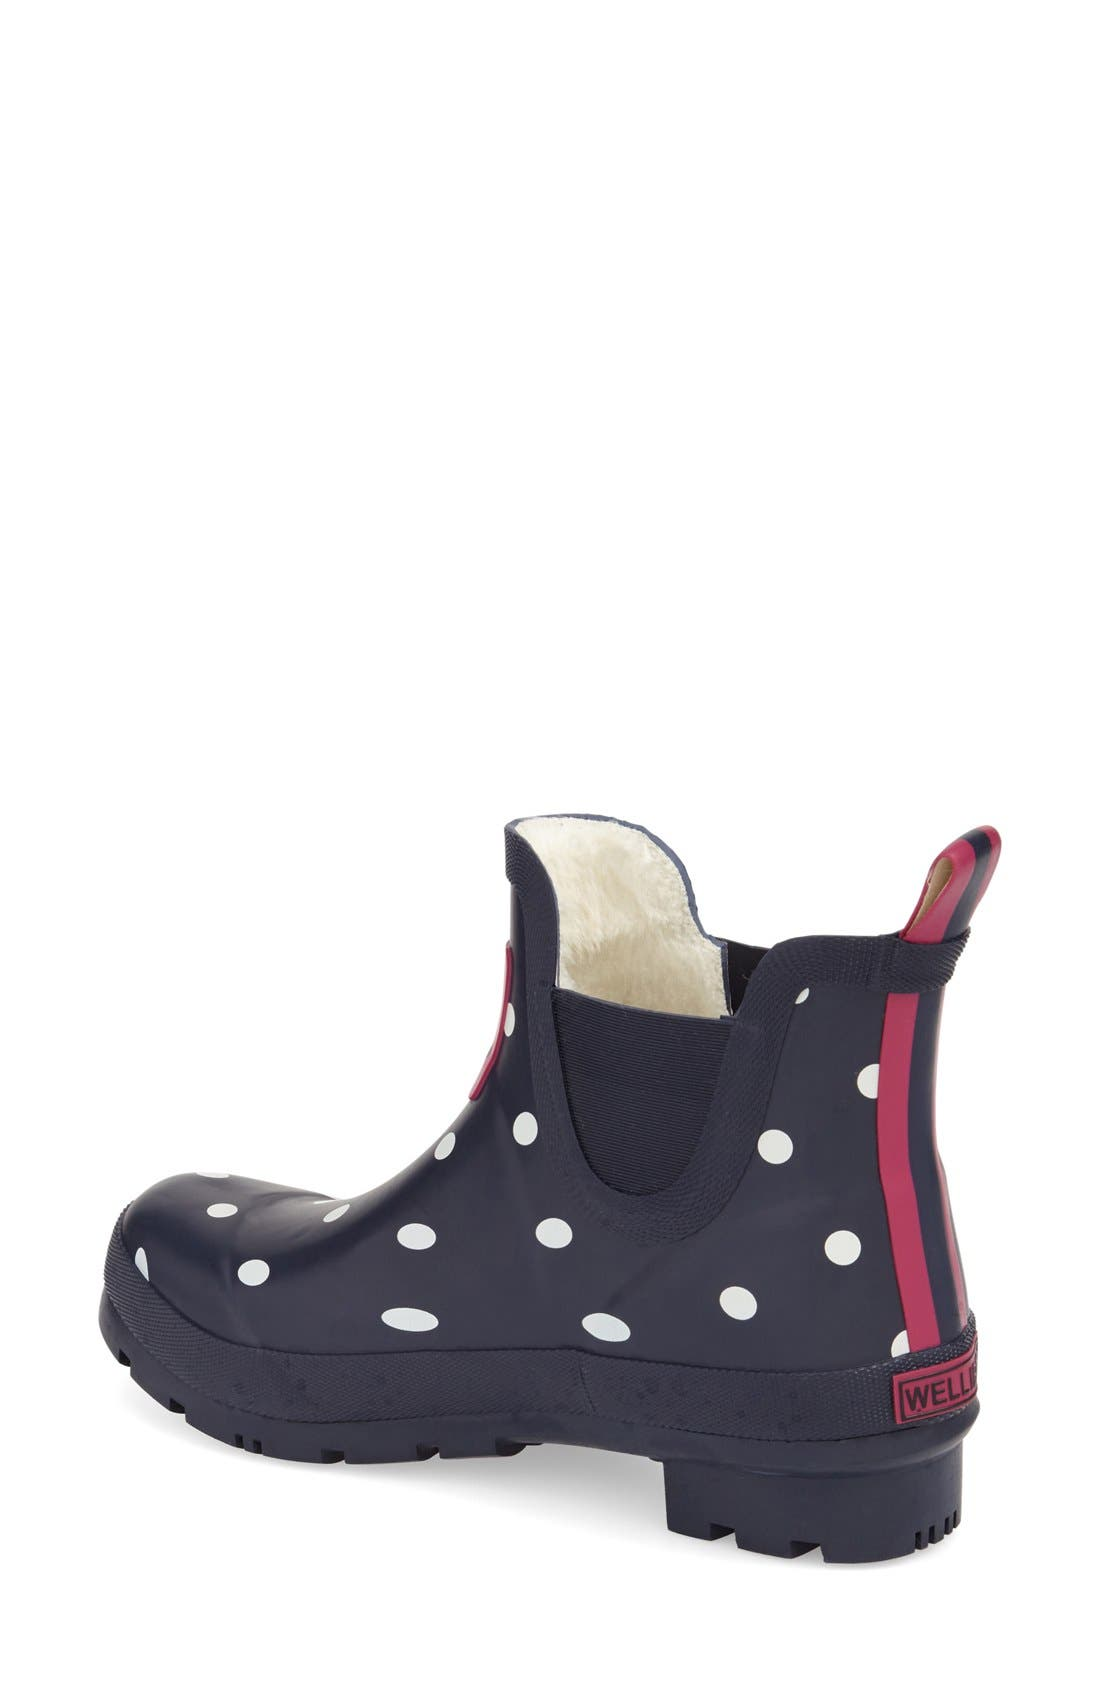 Alternate Image 2  - Joules 'Wellibob' Short Rain Boot (Women)